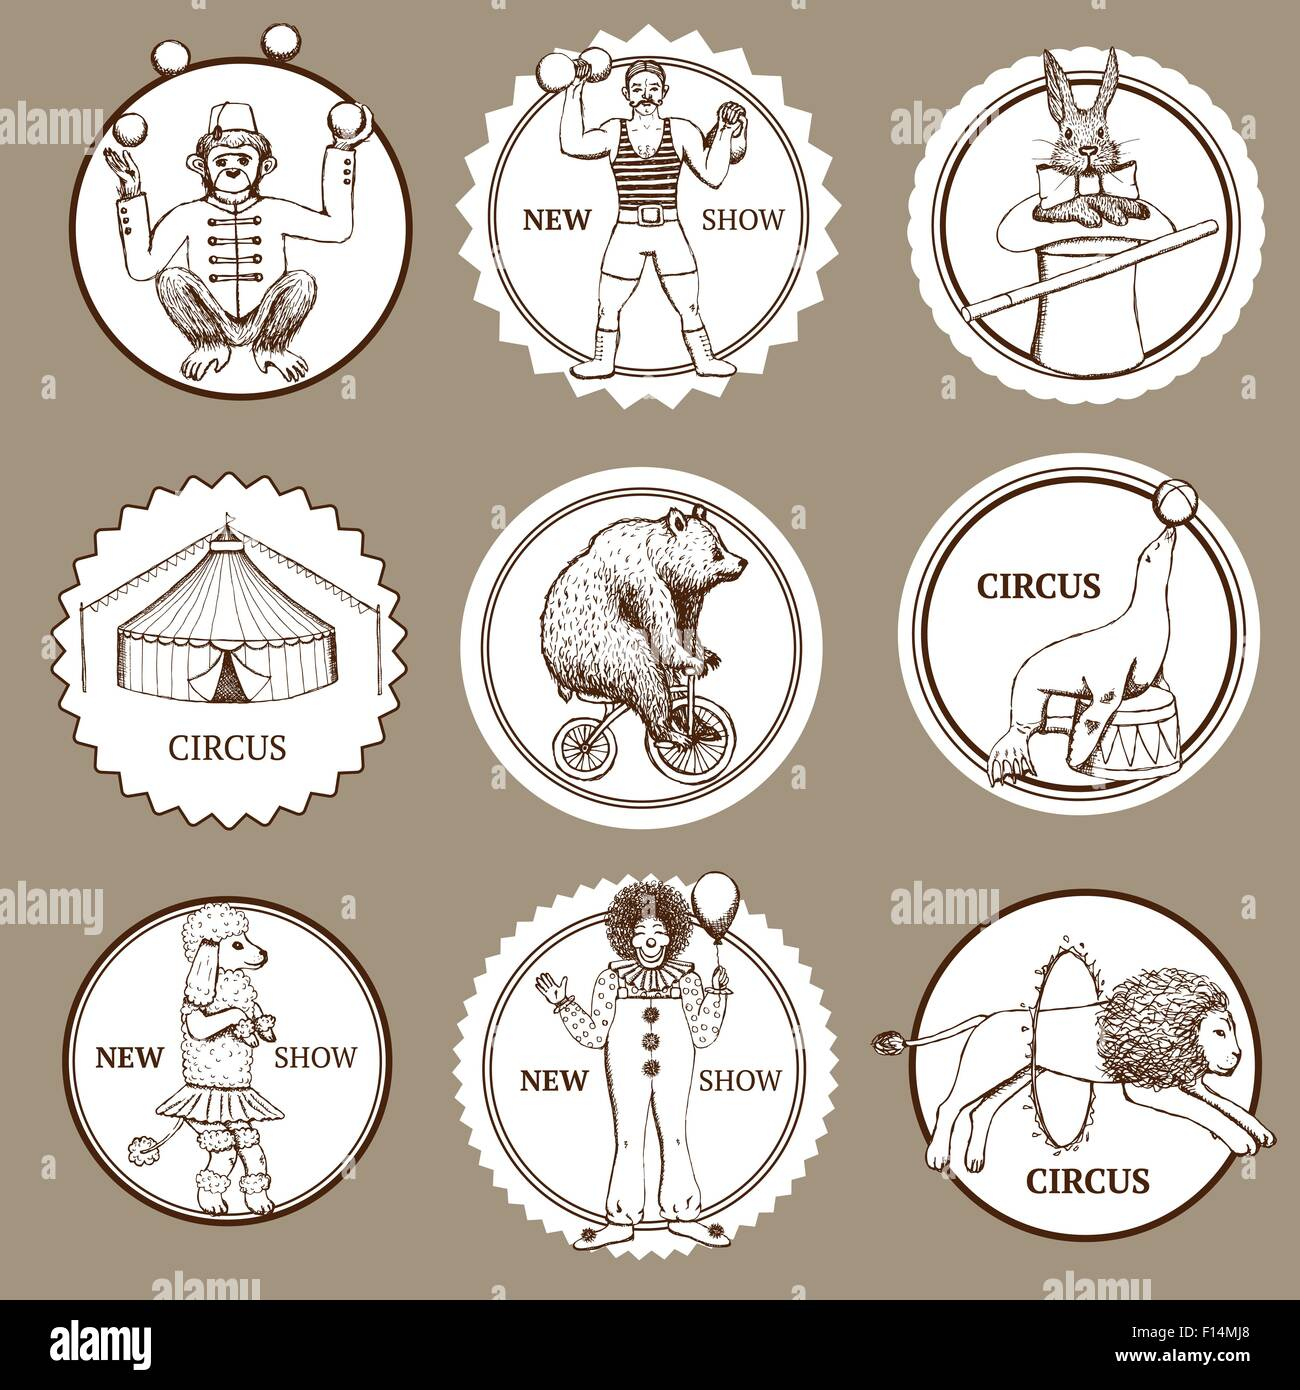 Sketch circus lables and logotypes in vintage style, vector - Stock Image